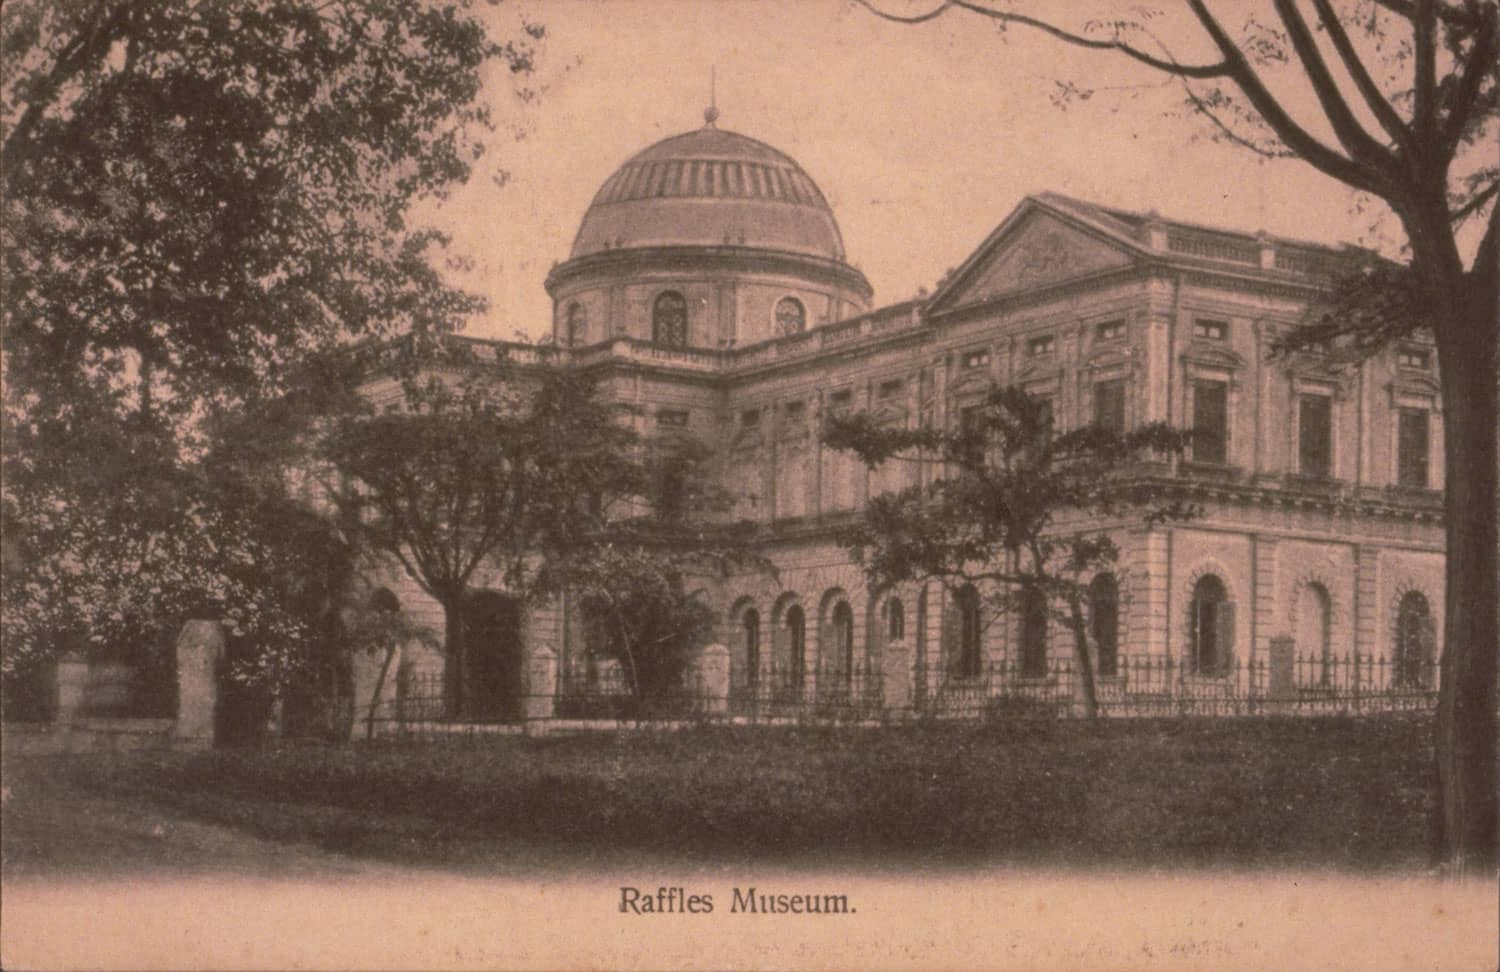 Raffles Library and Museum, 1900s